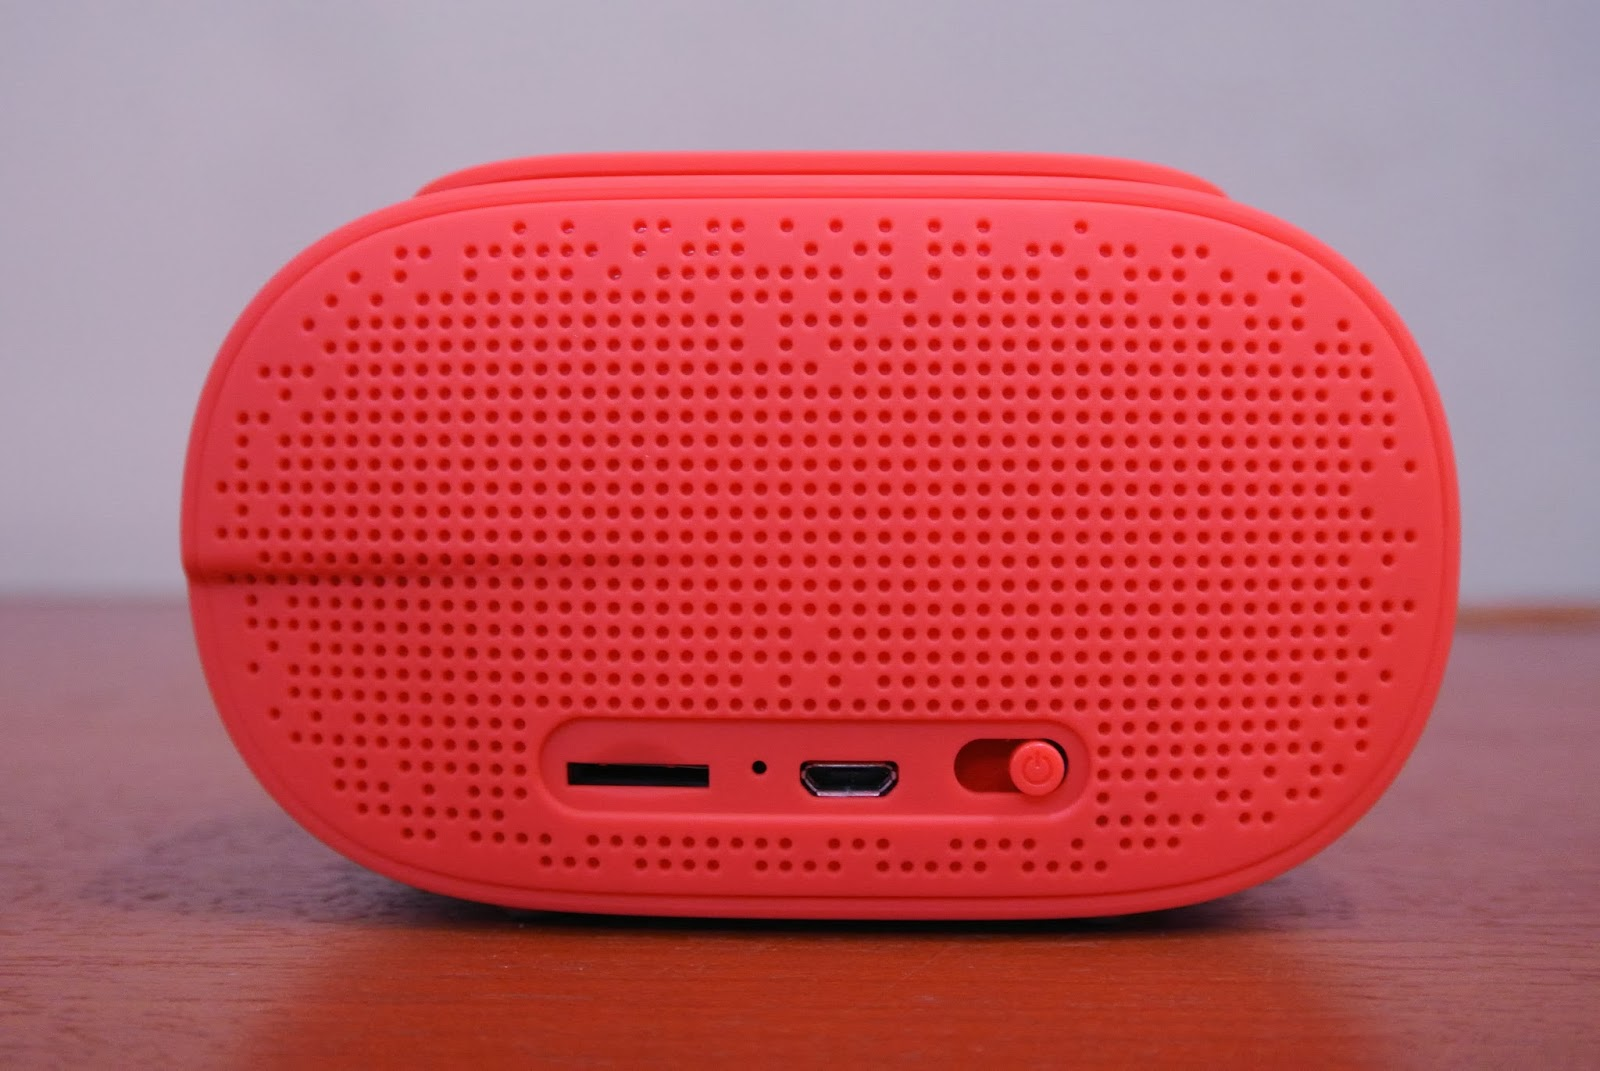 Discover Your Gadget Dygadget Sonicgear Pandora 3 Mini Quatro 2 Super Loud 20 Usb Speaker By Green A Tendency That You Might Touch It Accidentally Theres Was Once Where The Volume Switched To Maximum Without Me Noticing And Gave